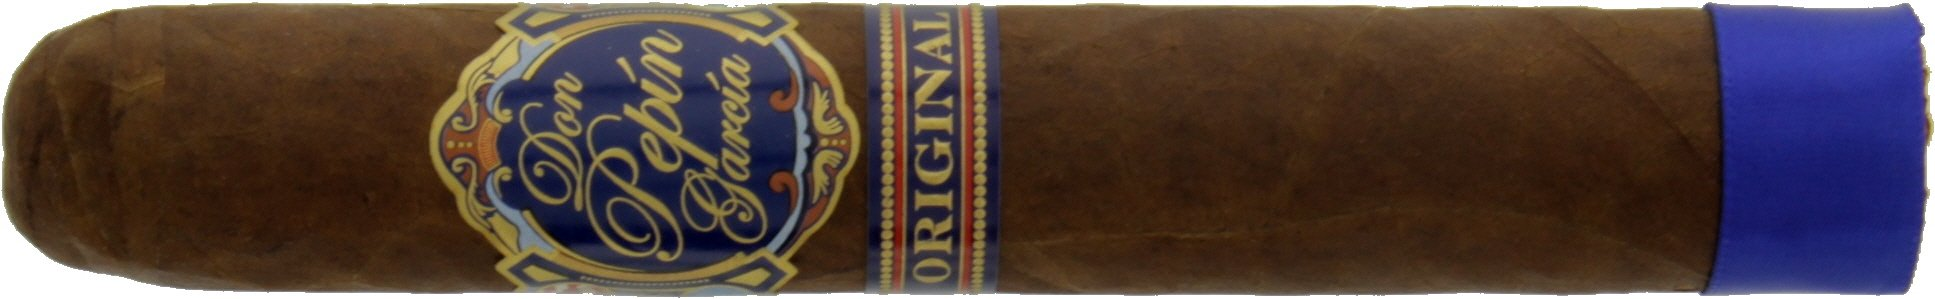 Don Pepin Blue Edition Toro Gordo